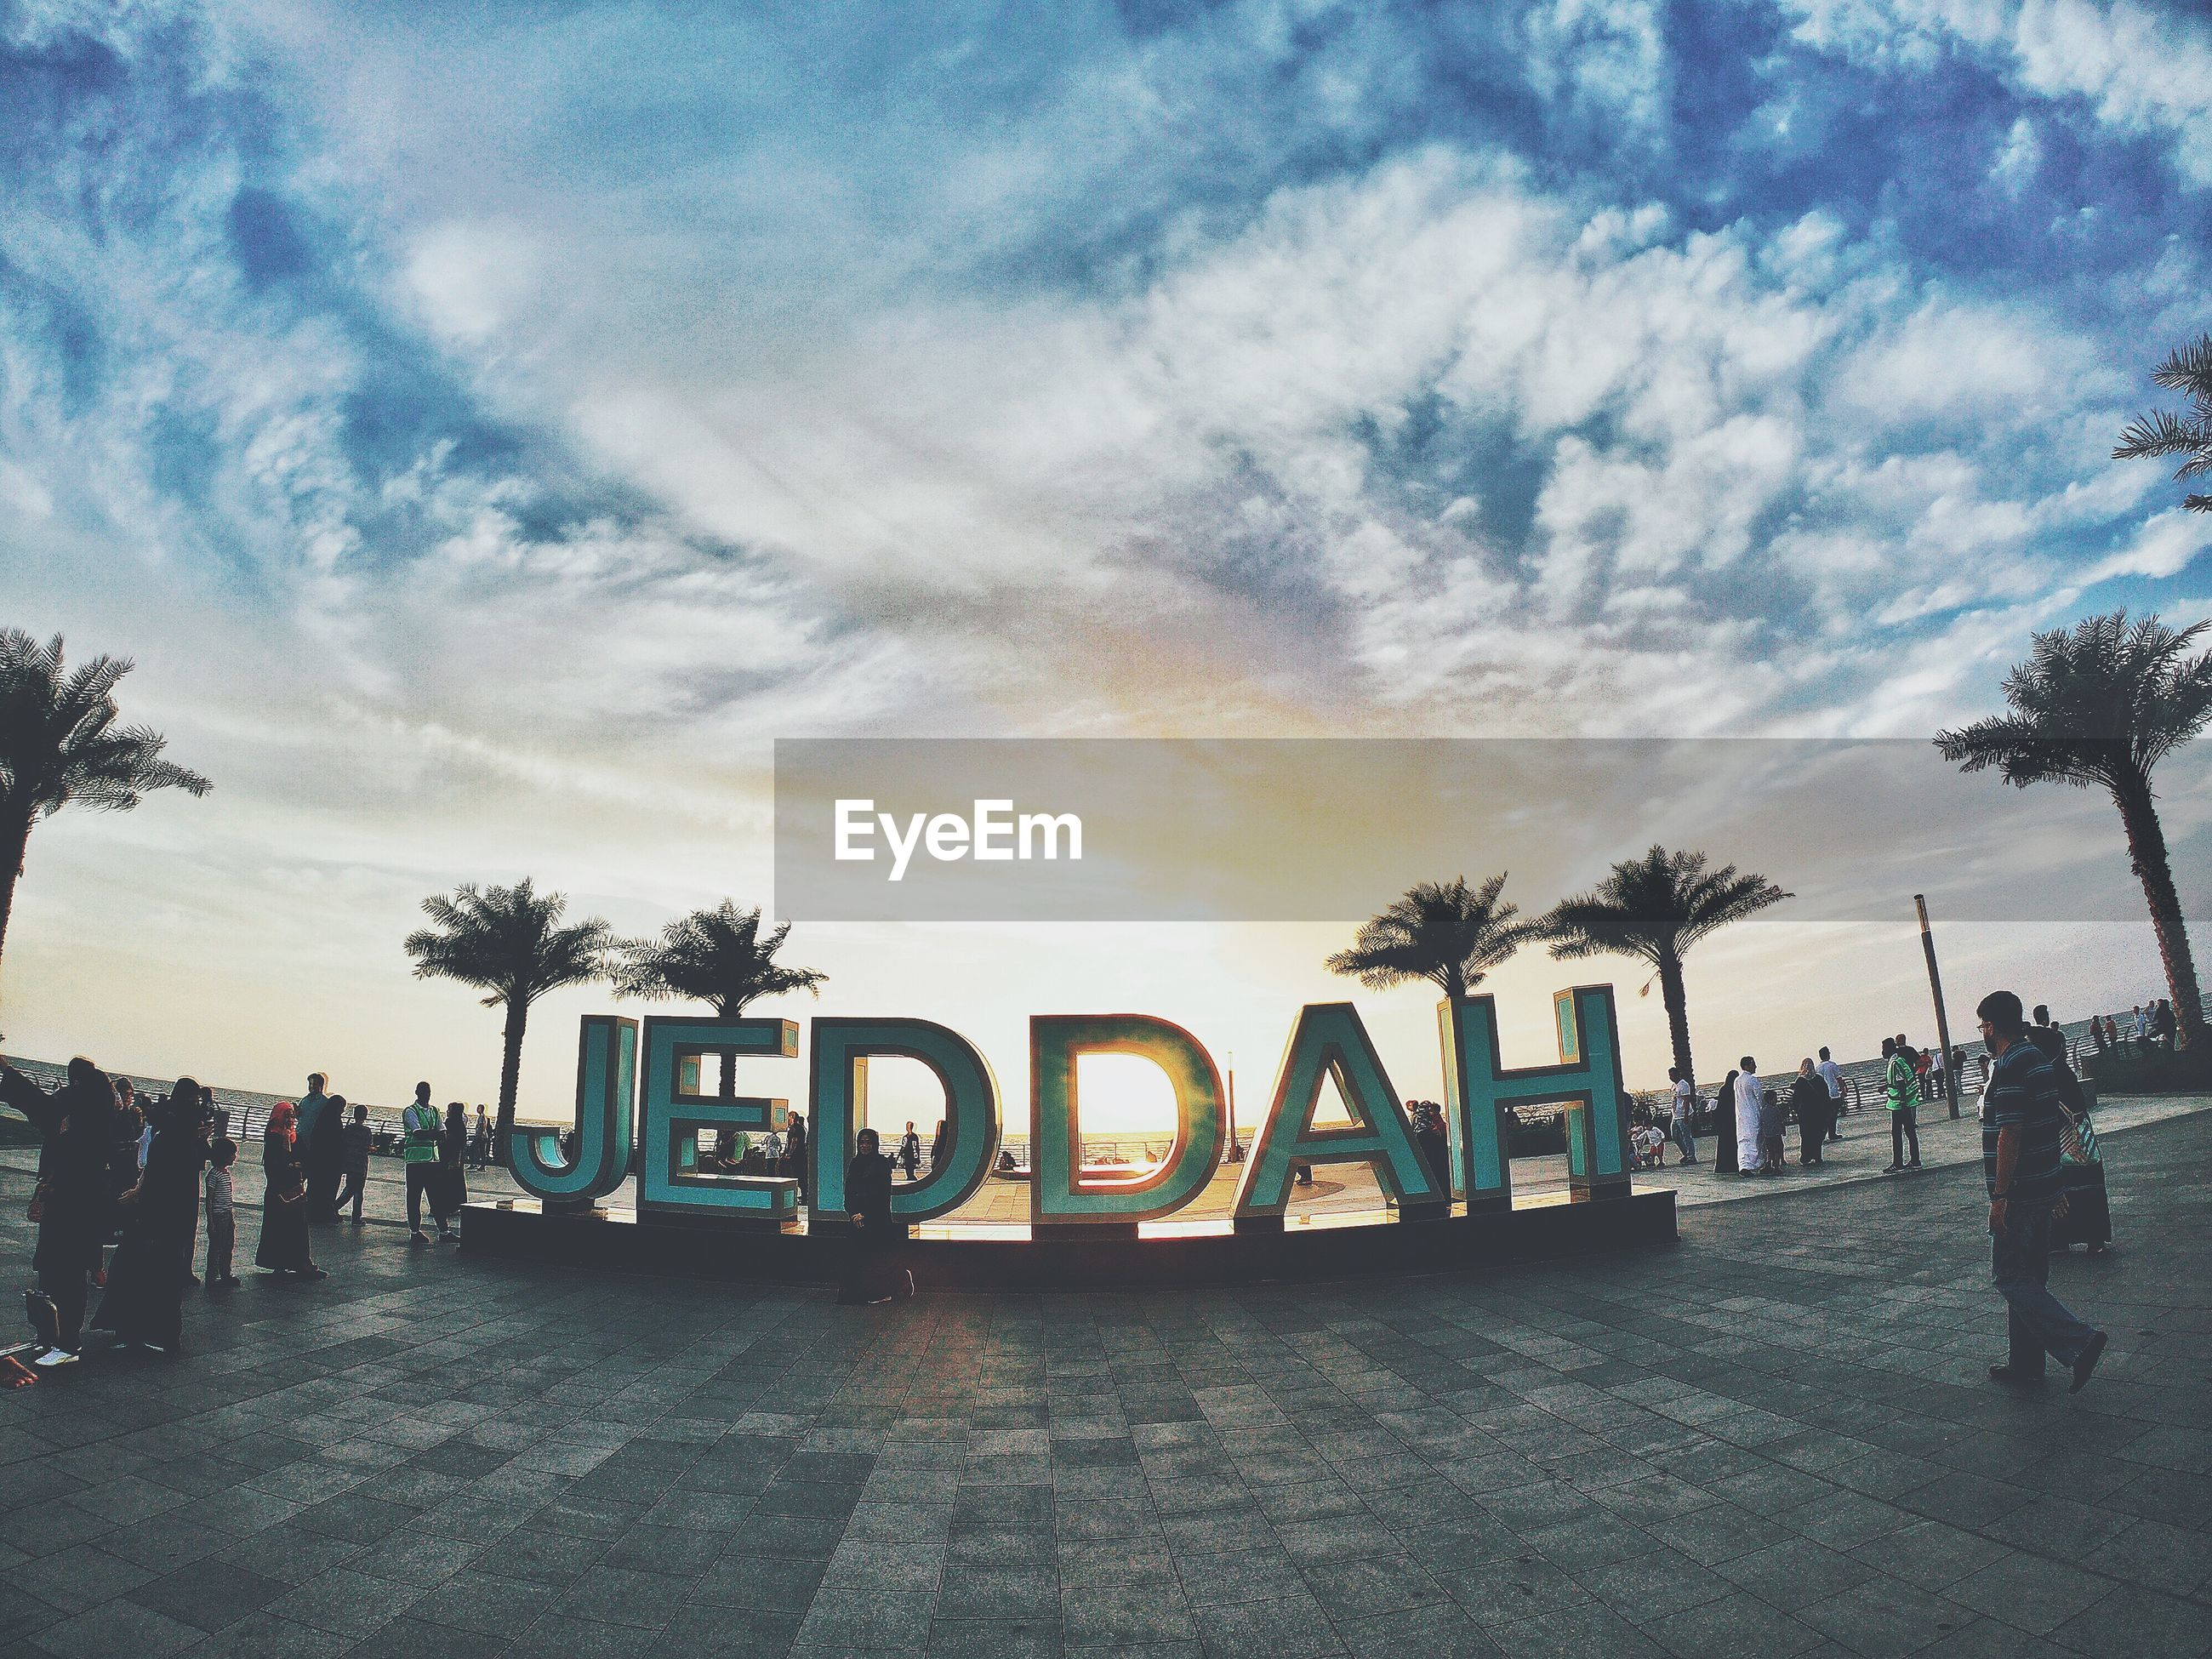 Redsea waterfront